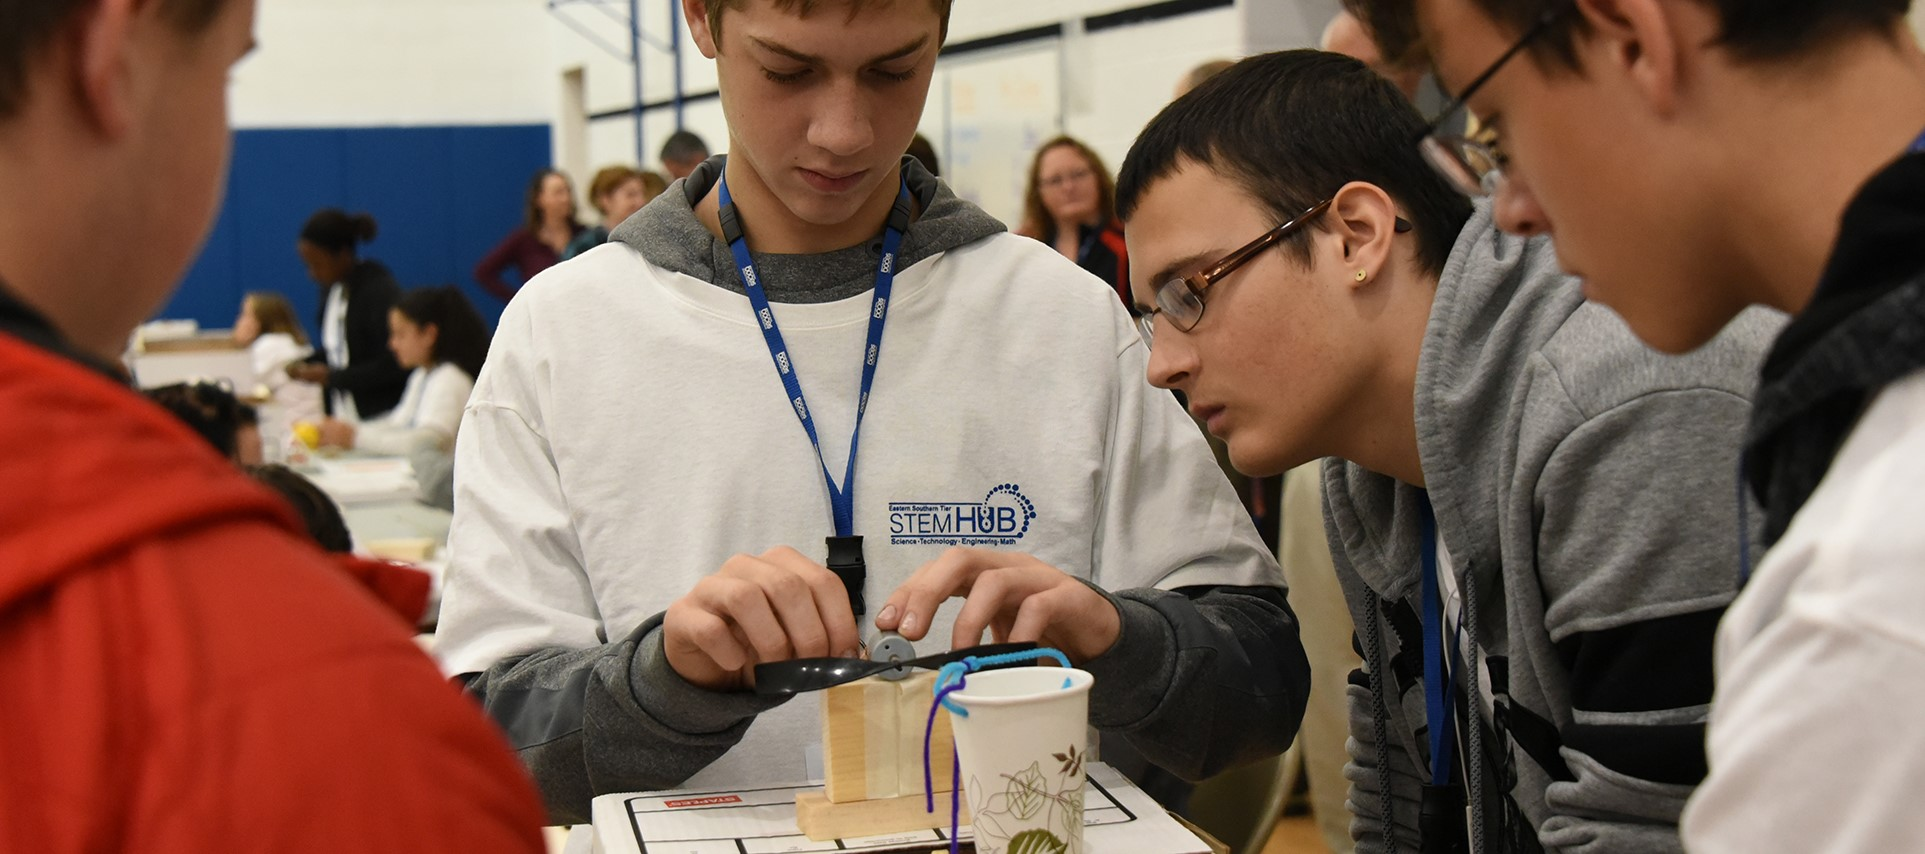 Students from across the region attend annual Engineering Day